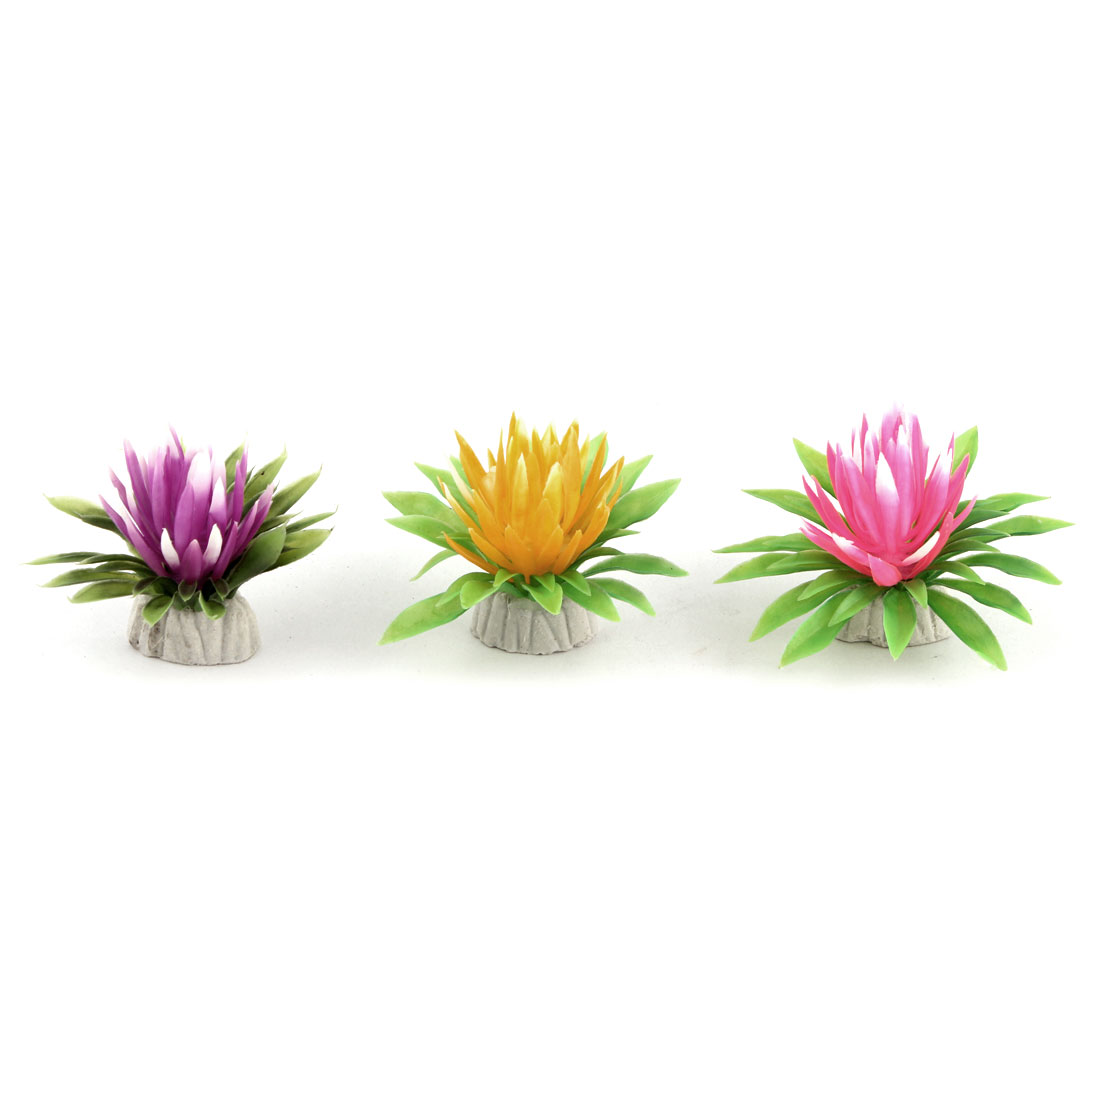 Aquarium Fish Bowl Ceramic Base Plastic Emulational Plant Grass Decoration 3 Pcs